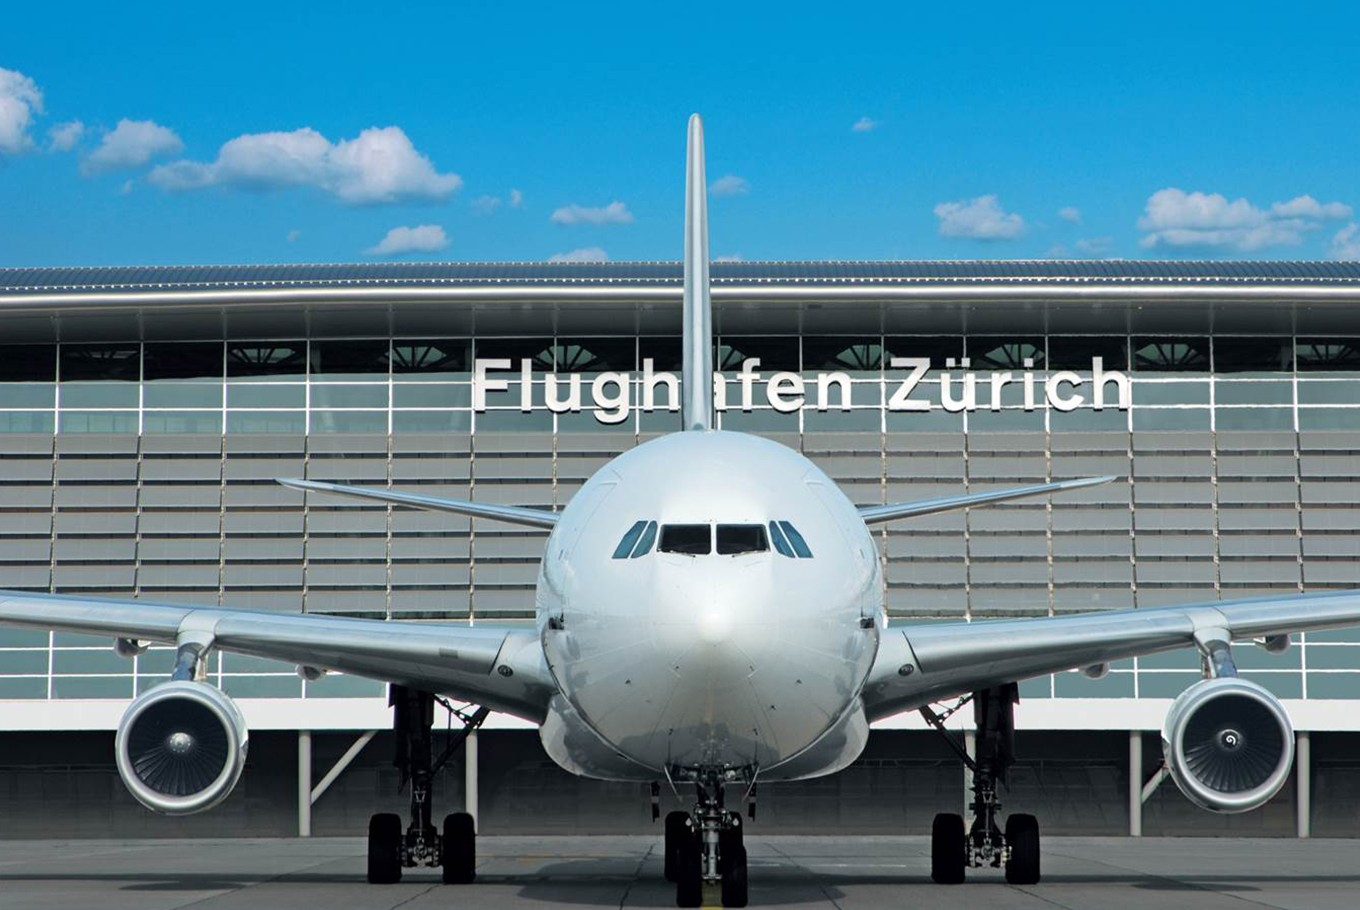 Checking In: A quick guide to Zurich International Airport